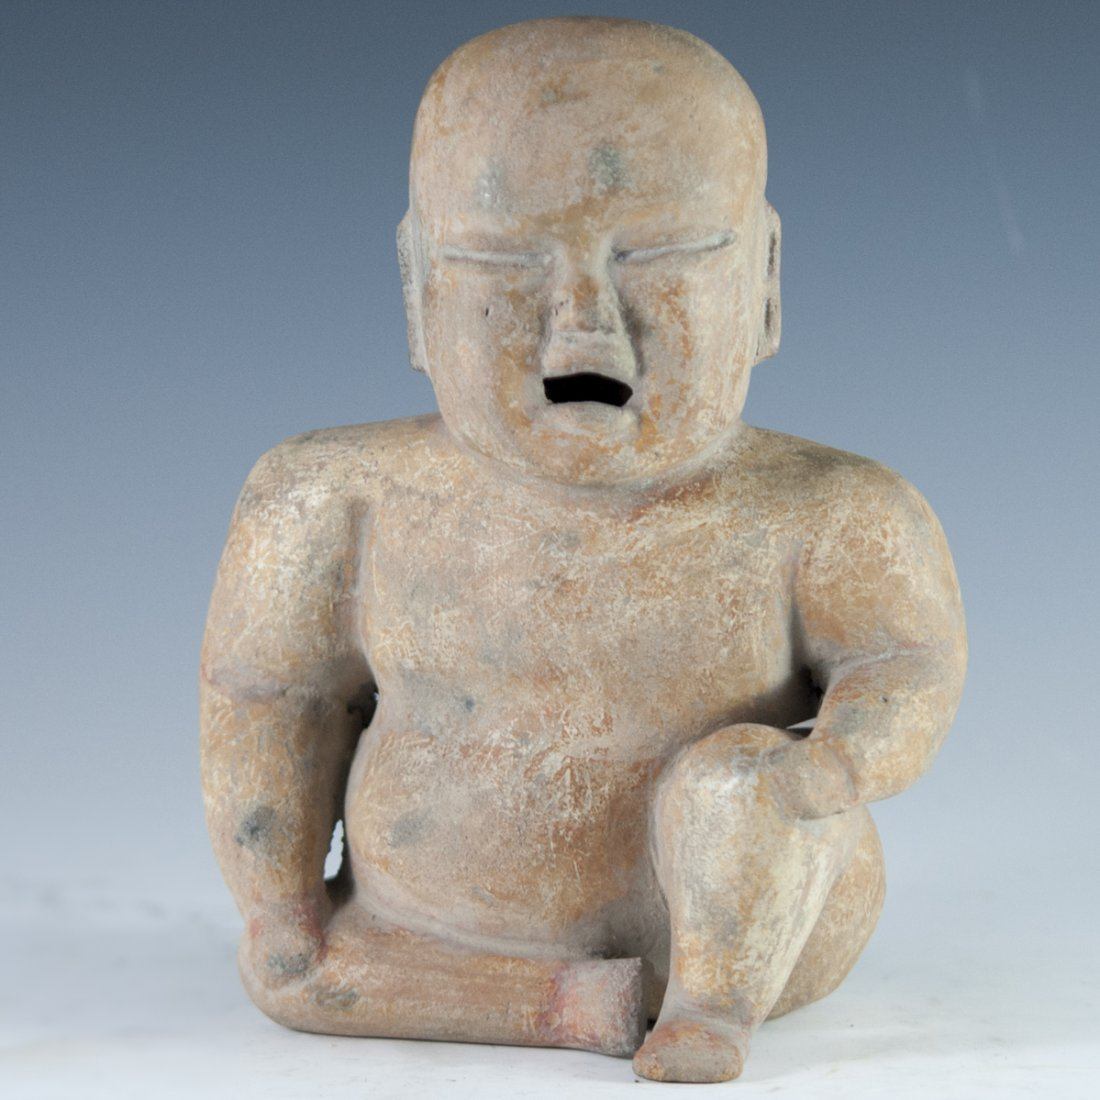 Antique Asian Terracotta Figurine